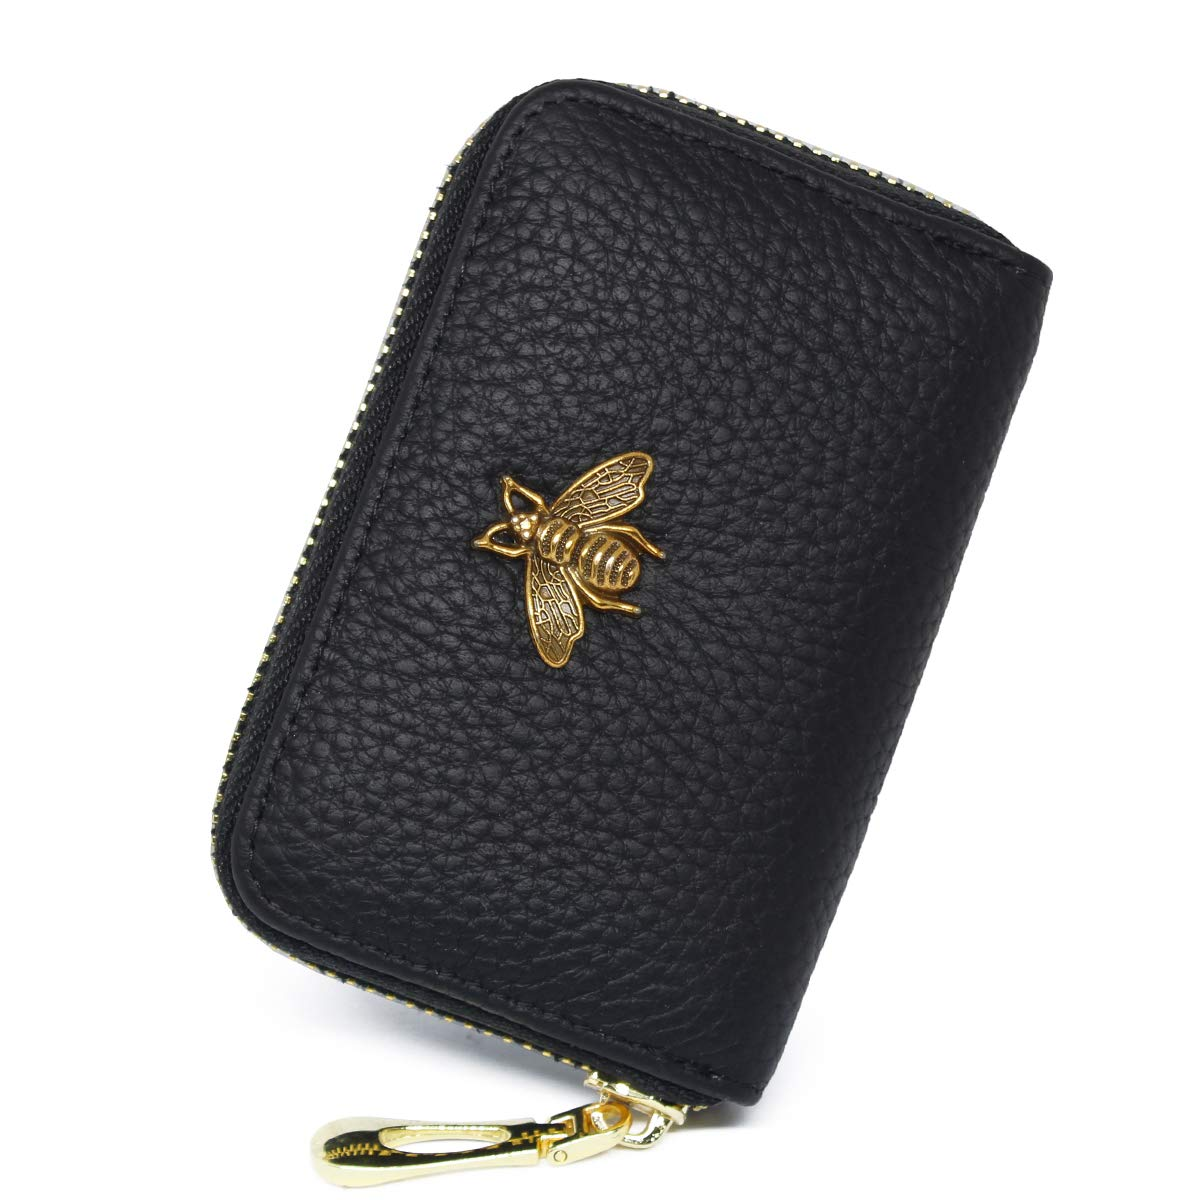 imeetu RFID Credit Card Holder Leather Zipper Card Case Wallet for Women S